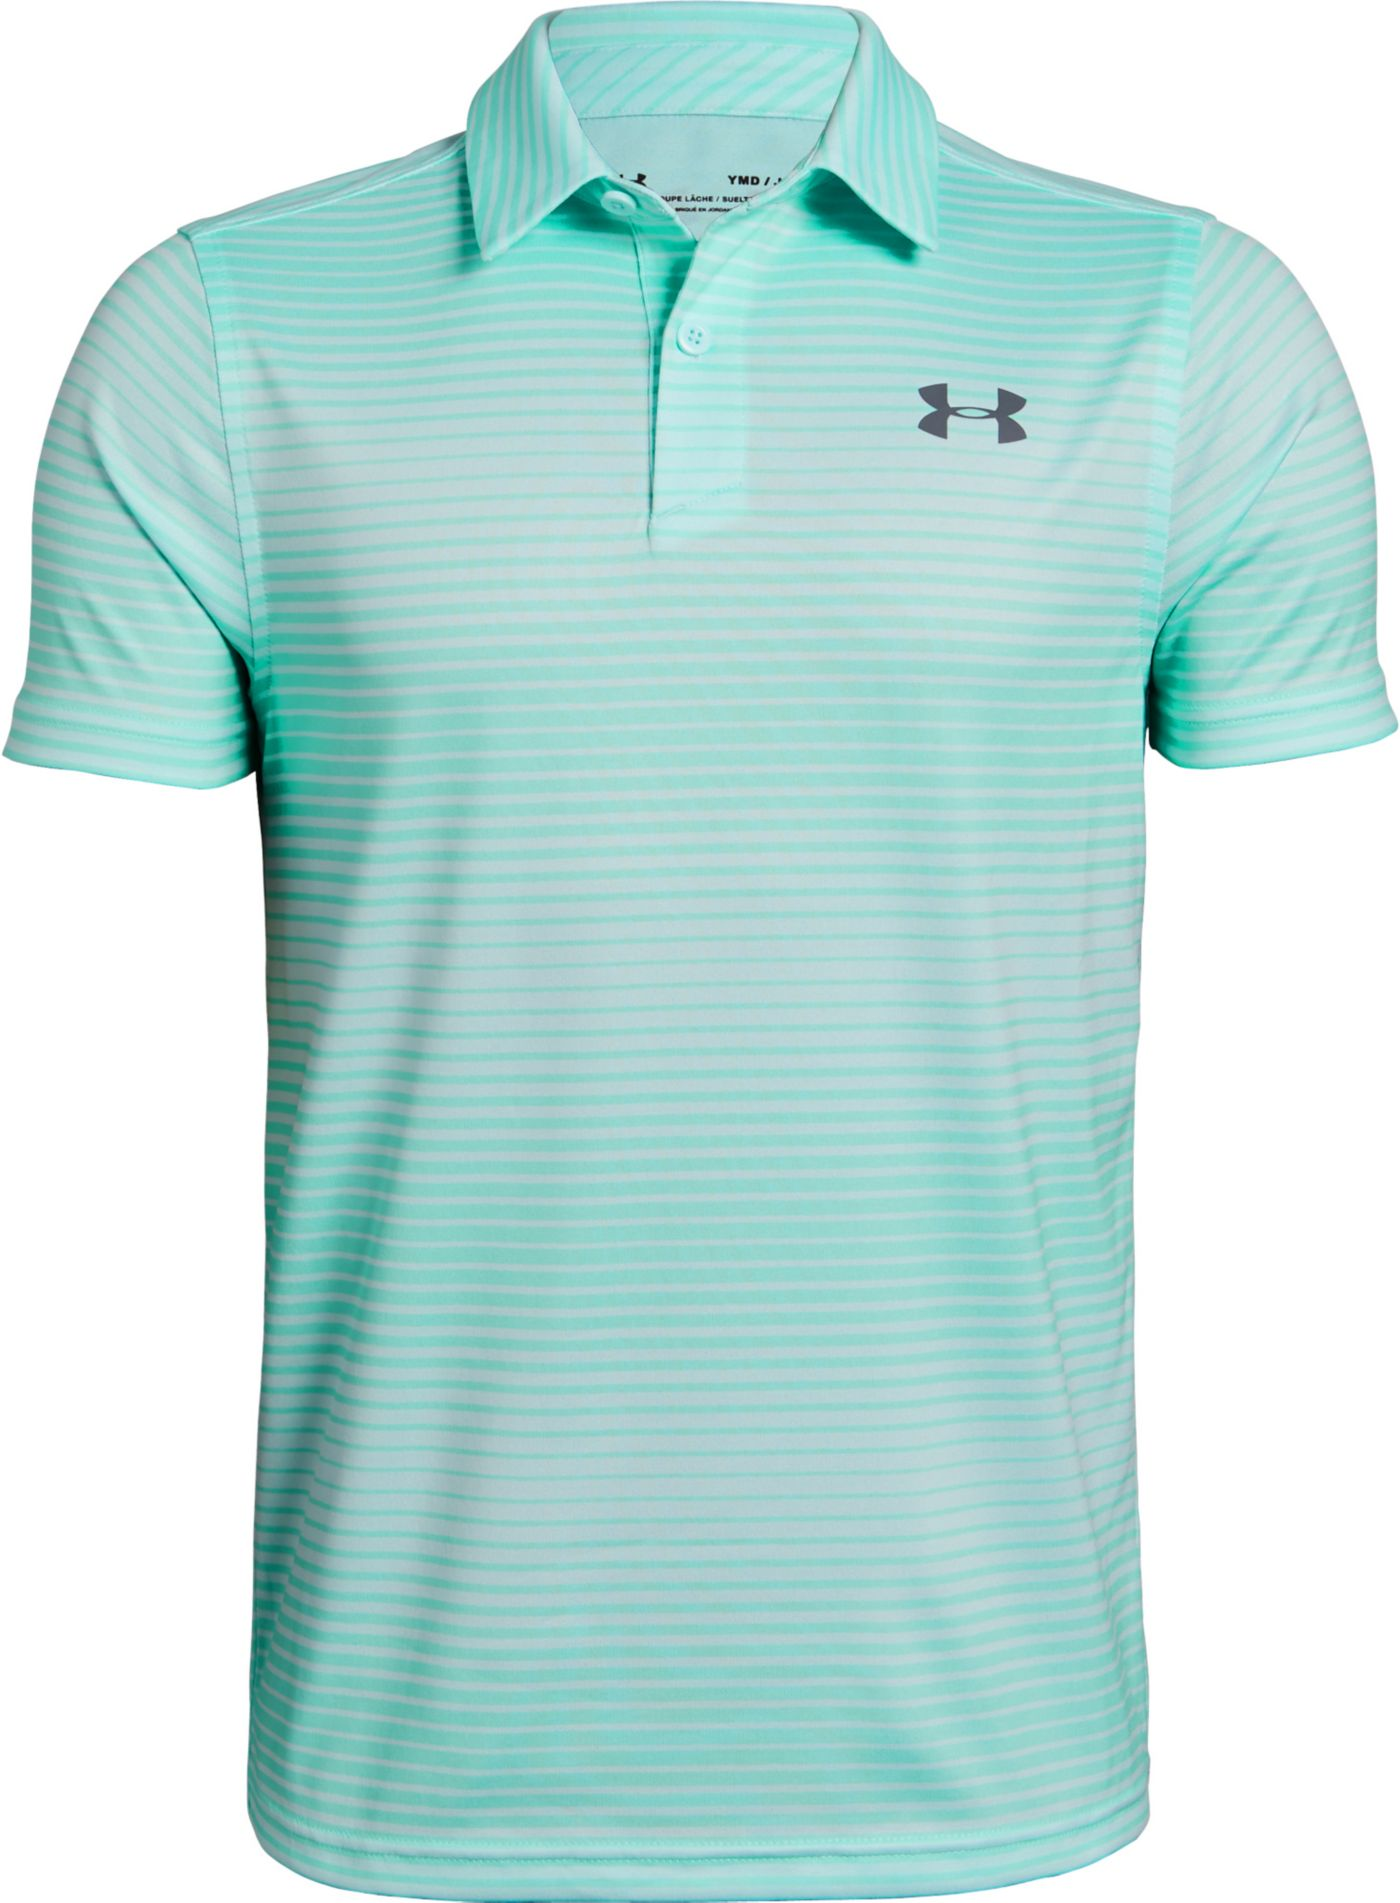 Under Armour Boys' Tour Tips Novelty Golf Polo